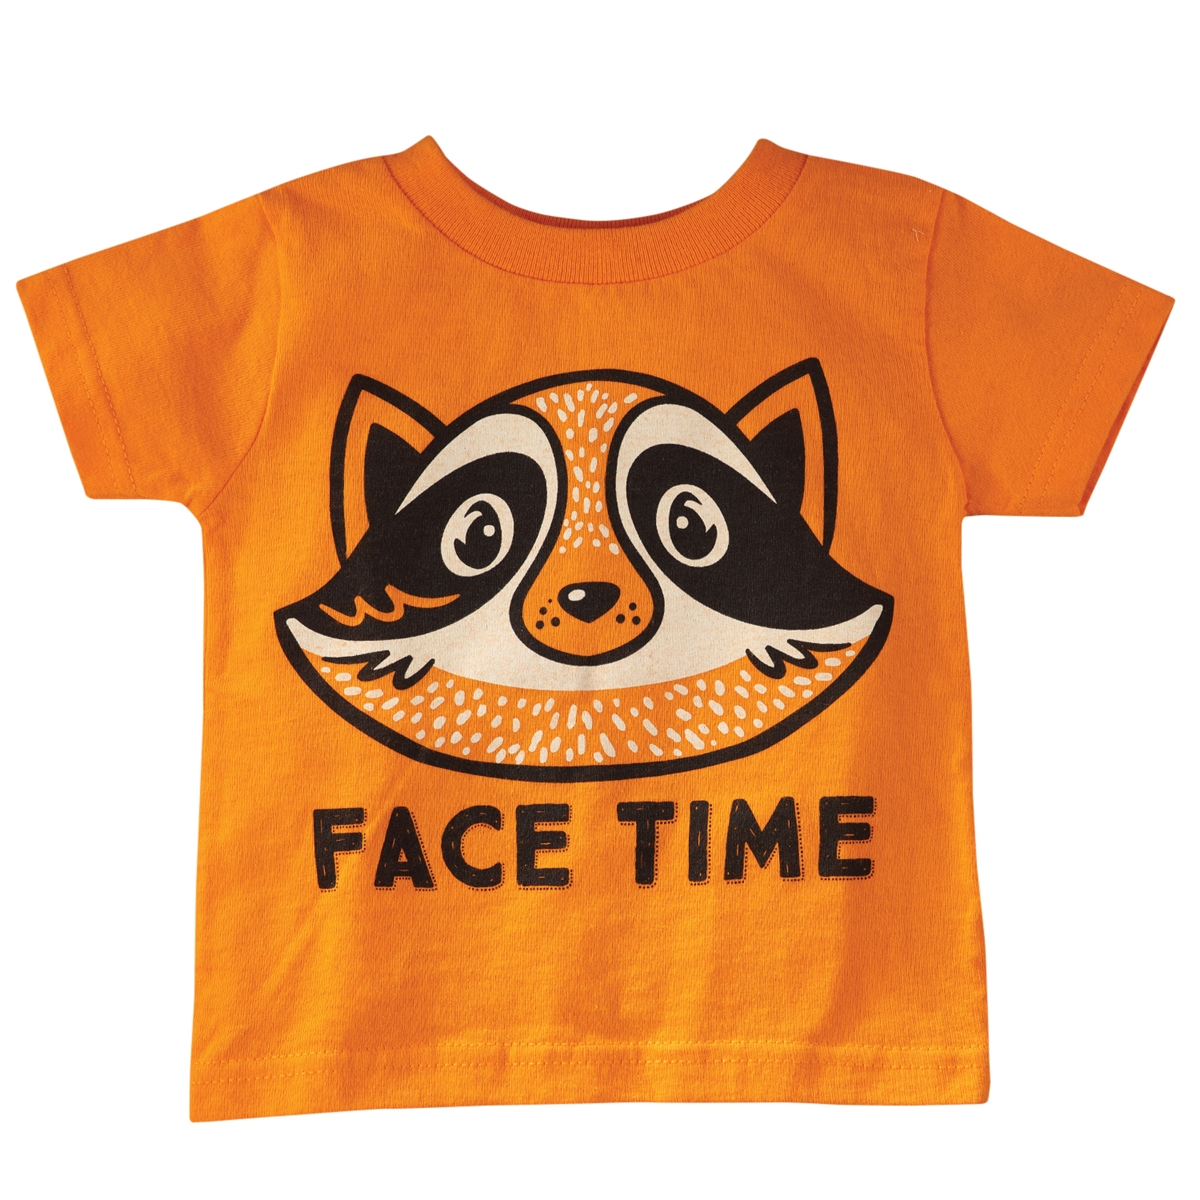 Face Time Kid's Tee